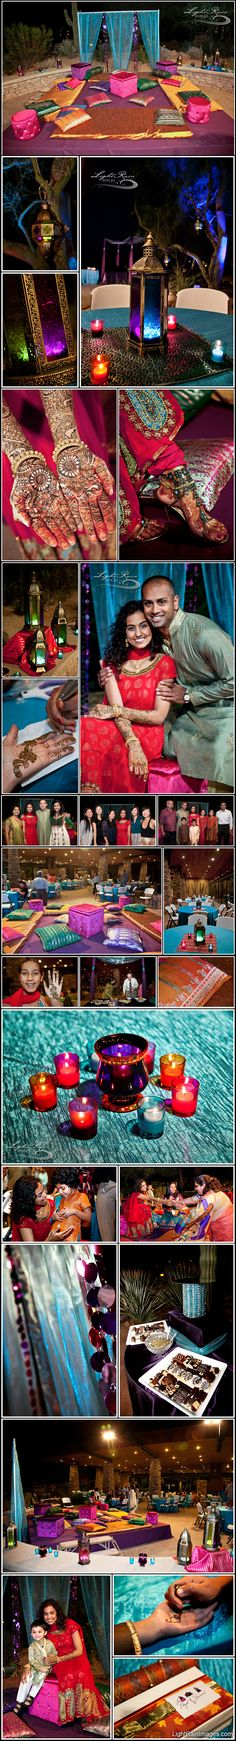 Jago/Sangeet Setup. Indian wedding. #shaadibazaar, #indianwedding